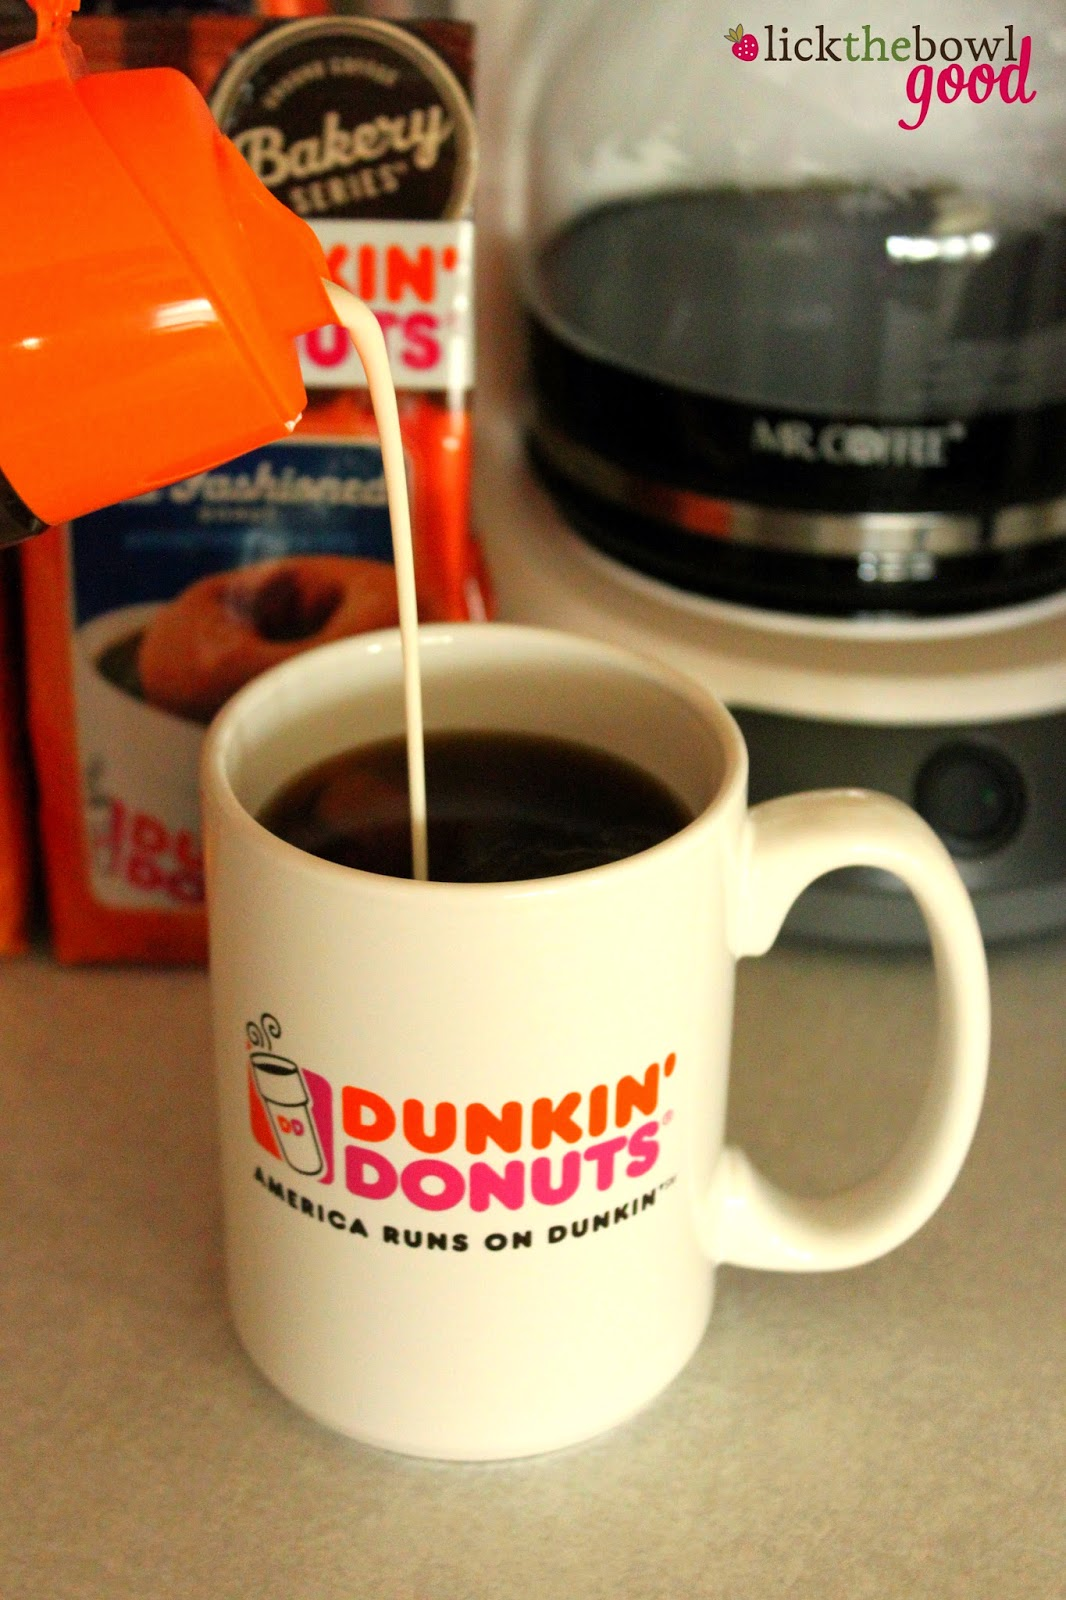 Lick The Bowl Good: Dunkin Donuts Coffee Giveaway! (CLOSED) (1066 x 1600 Pixel)